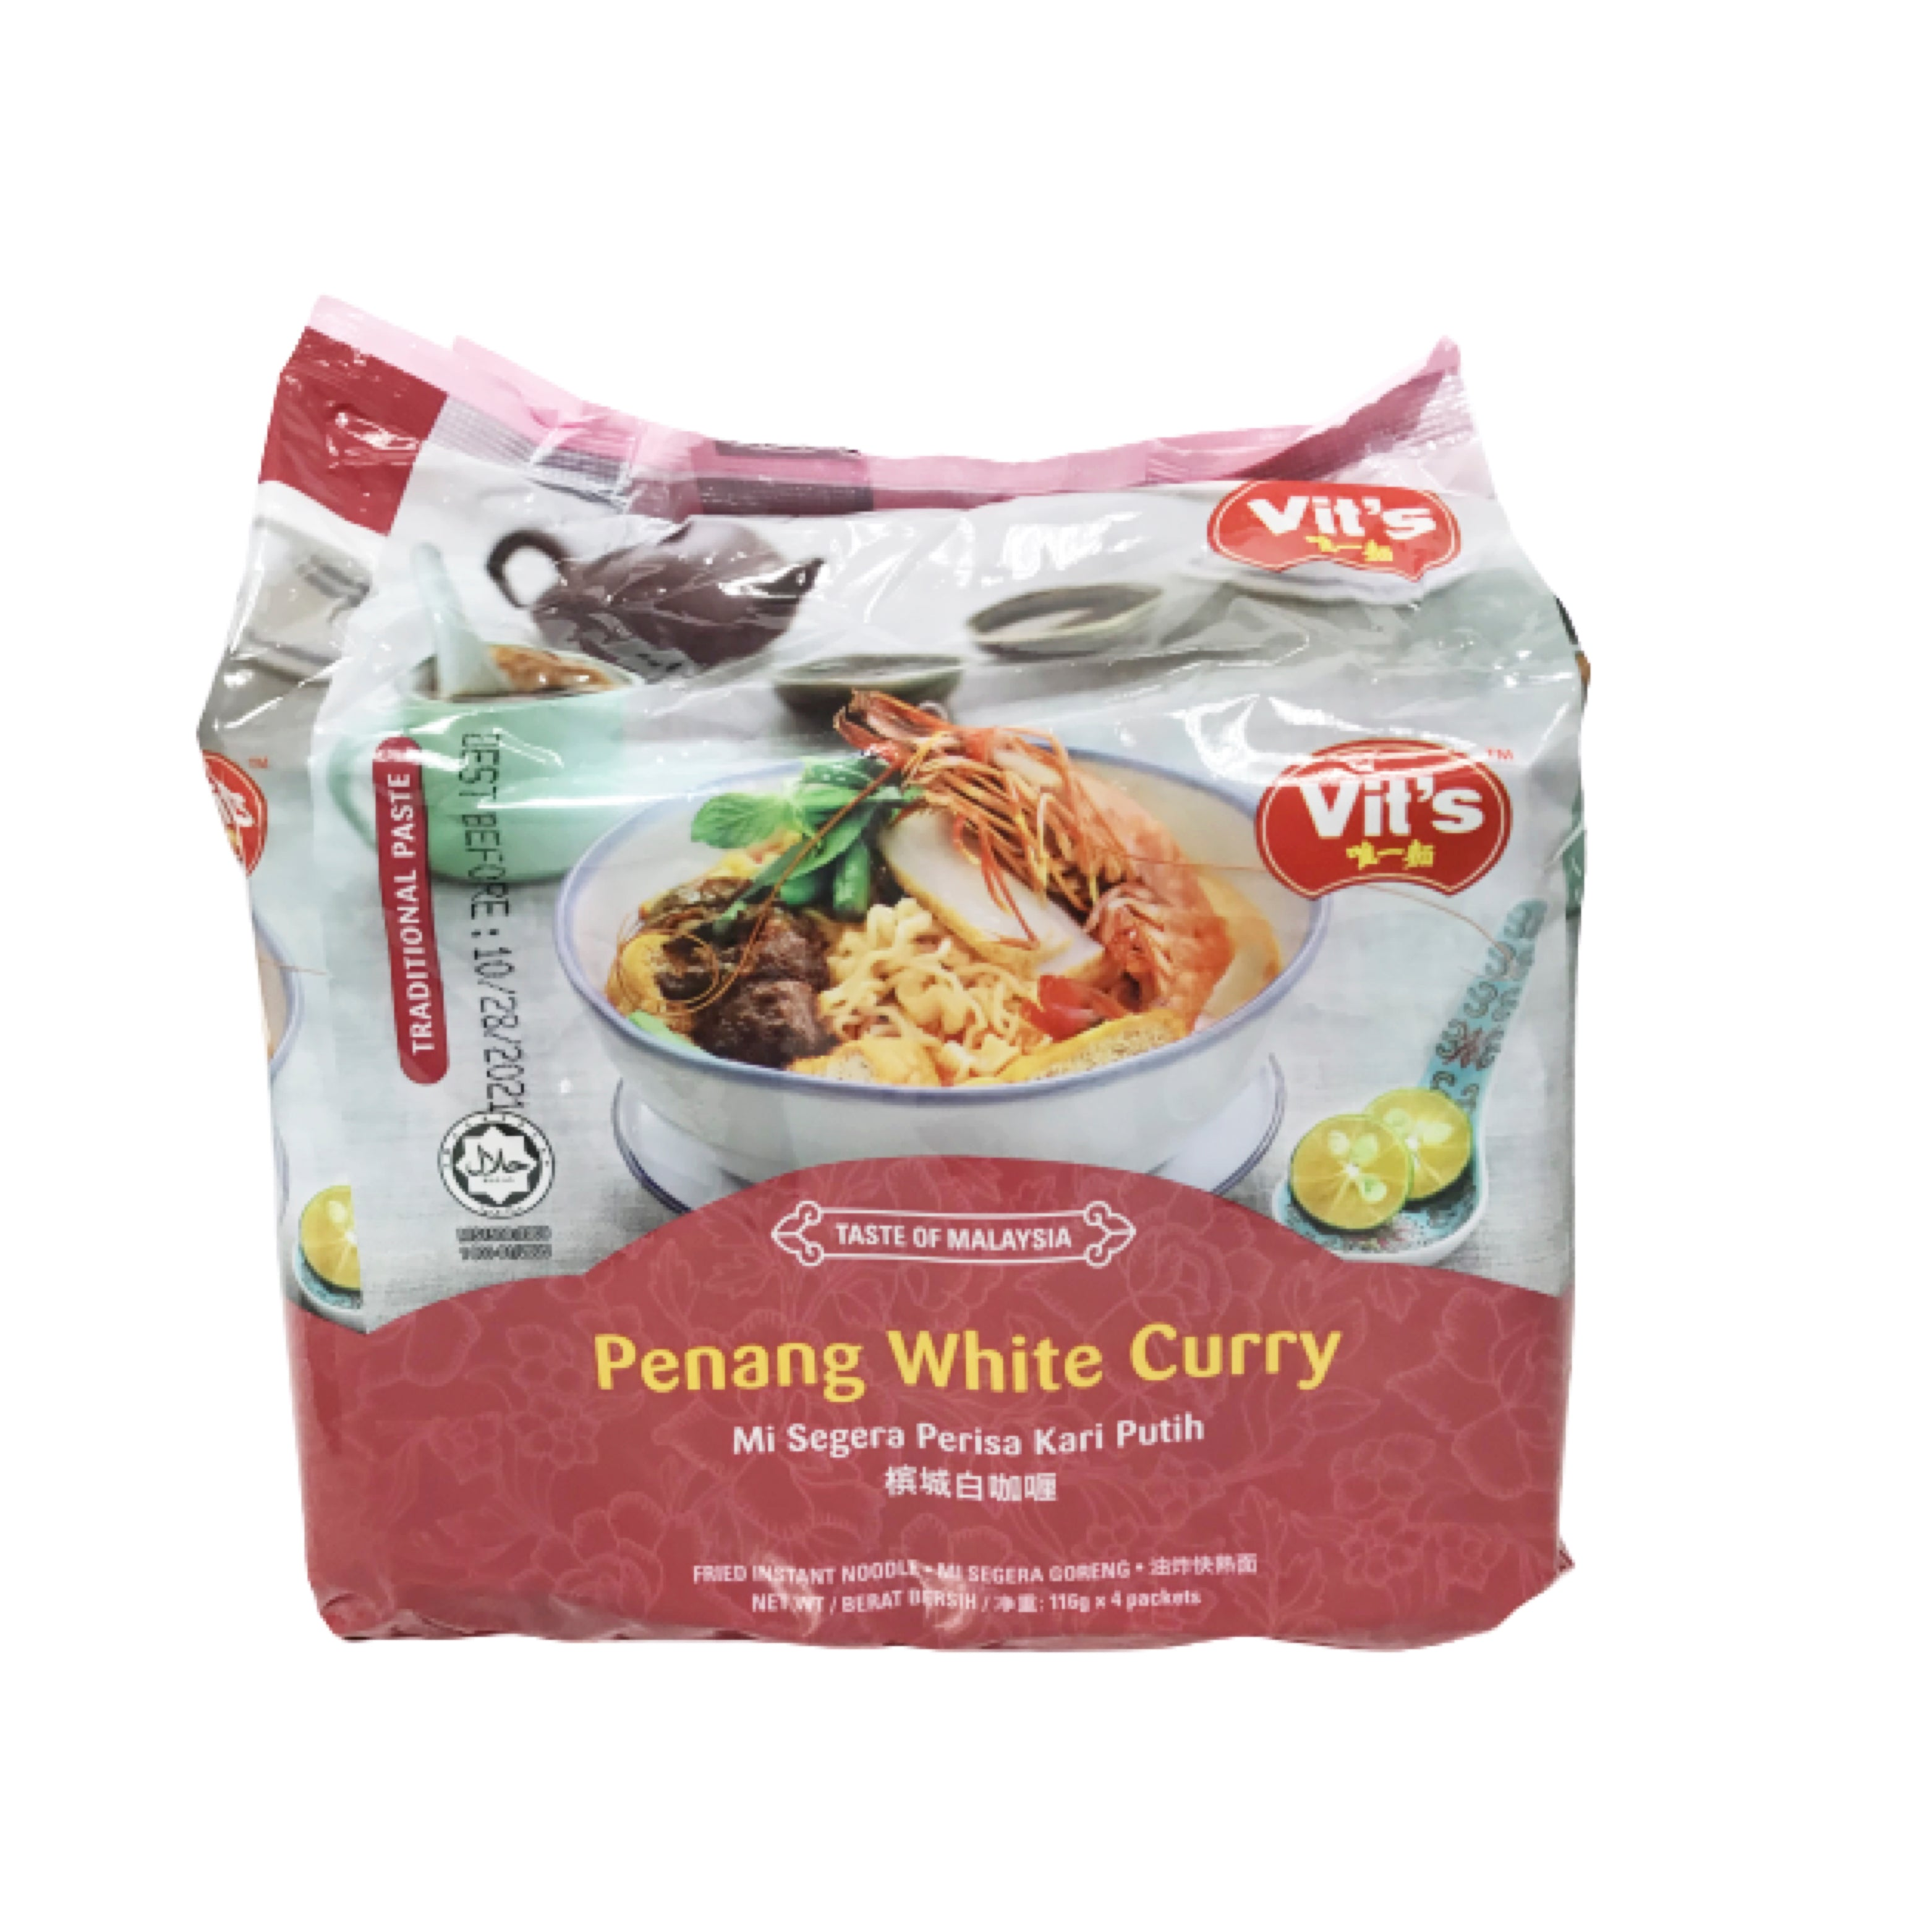 Vit's Penang White Curry Instant Noodle (4 Packs)